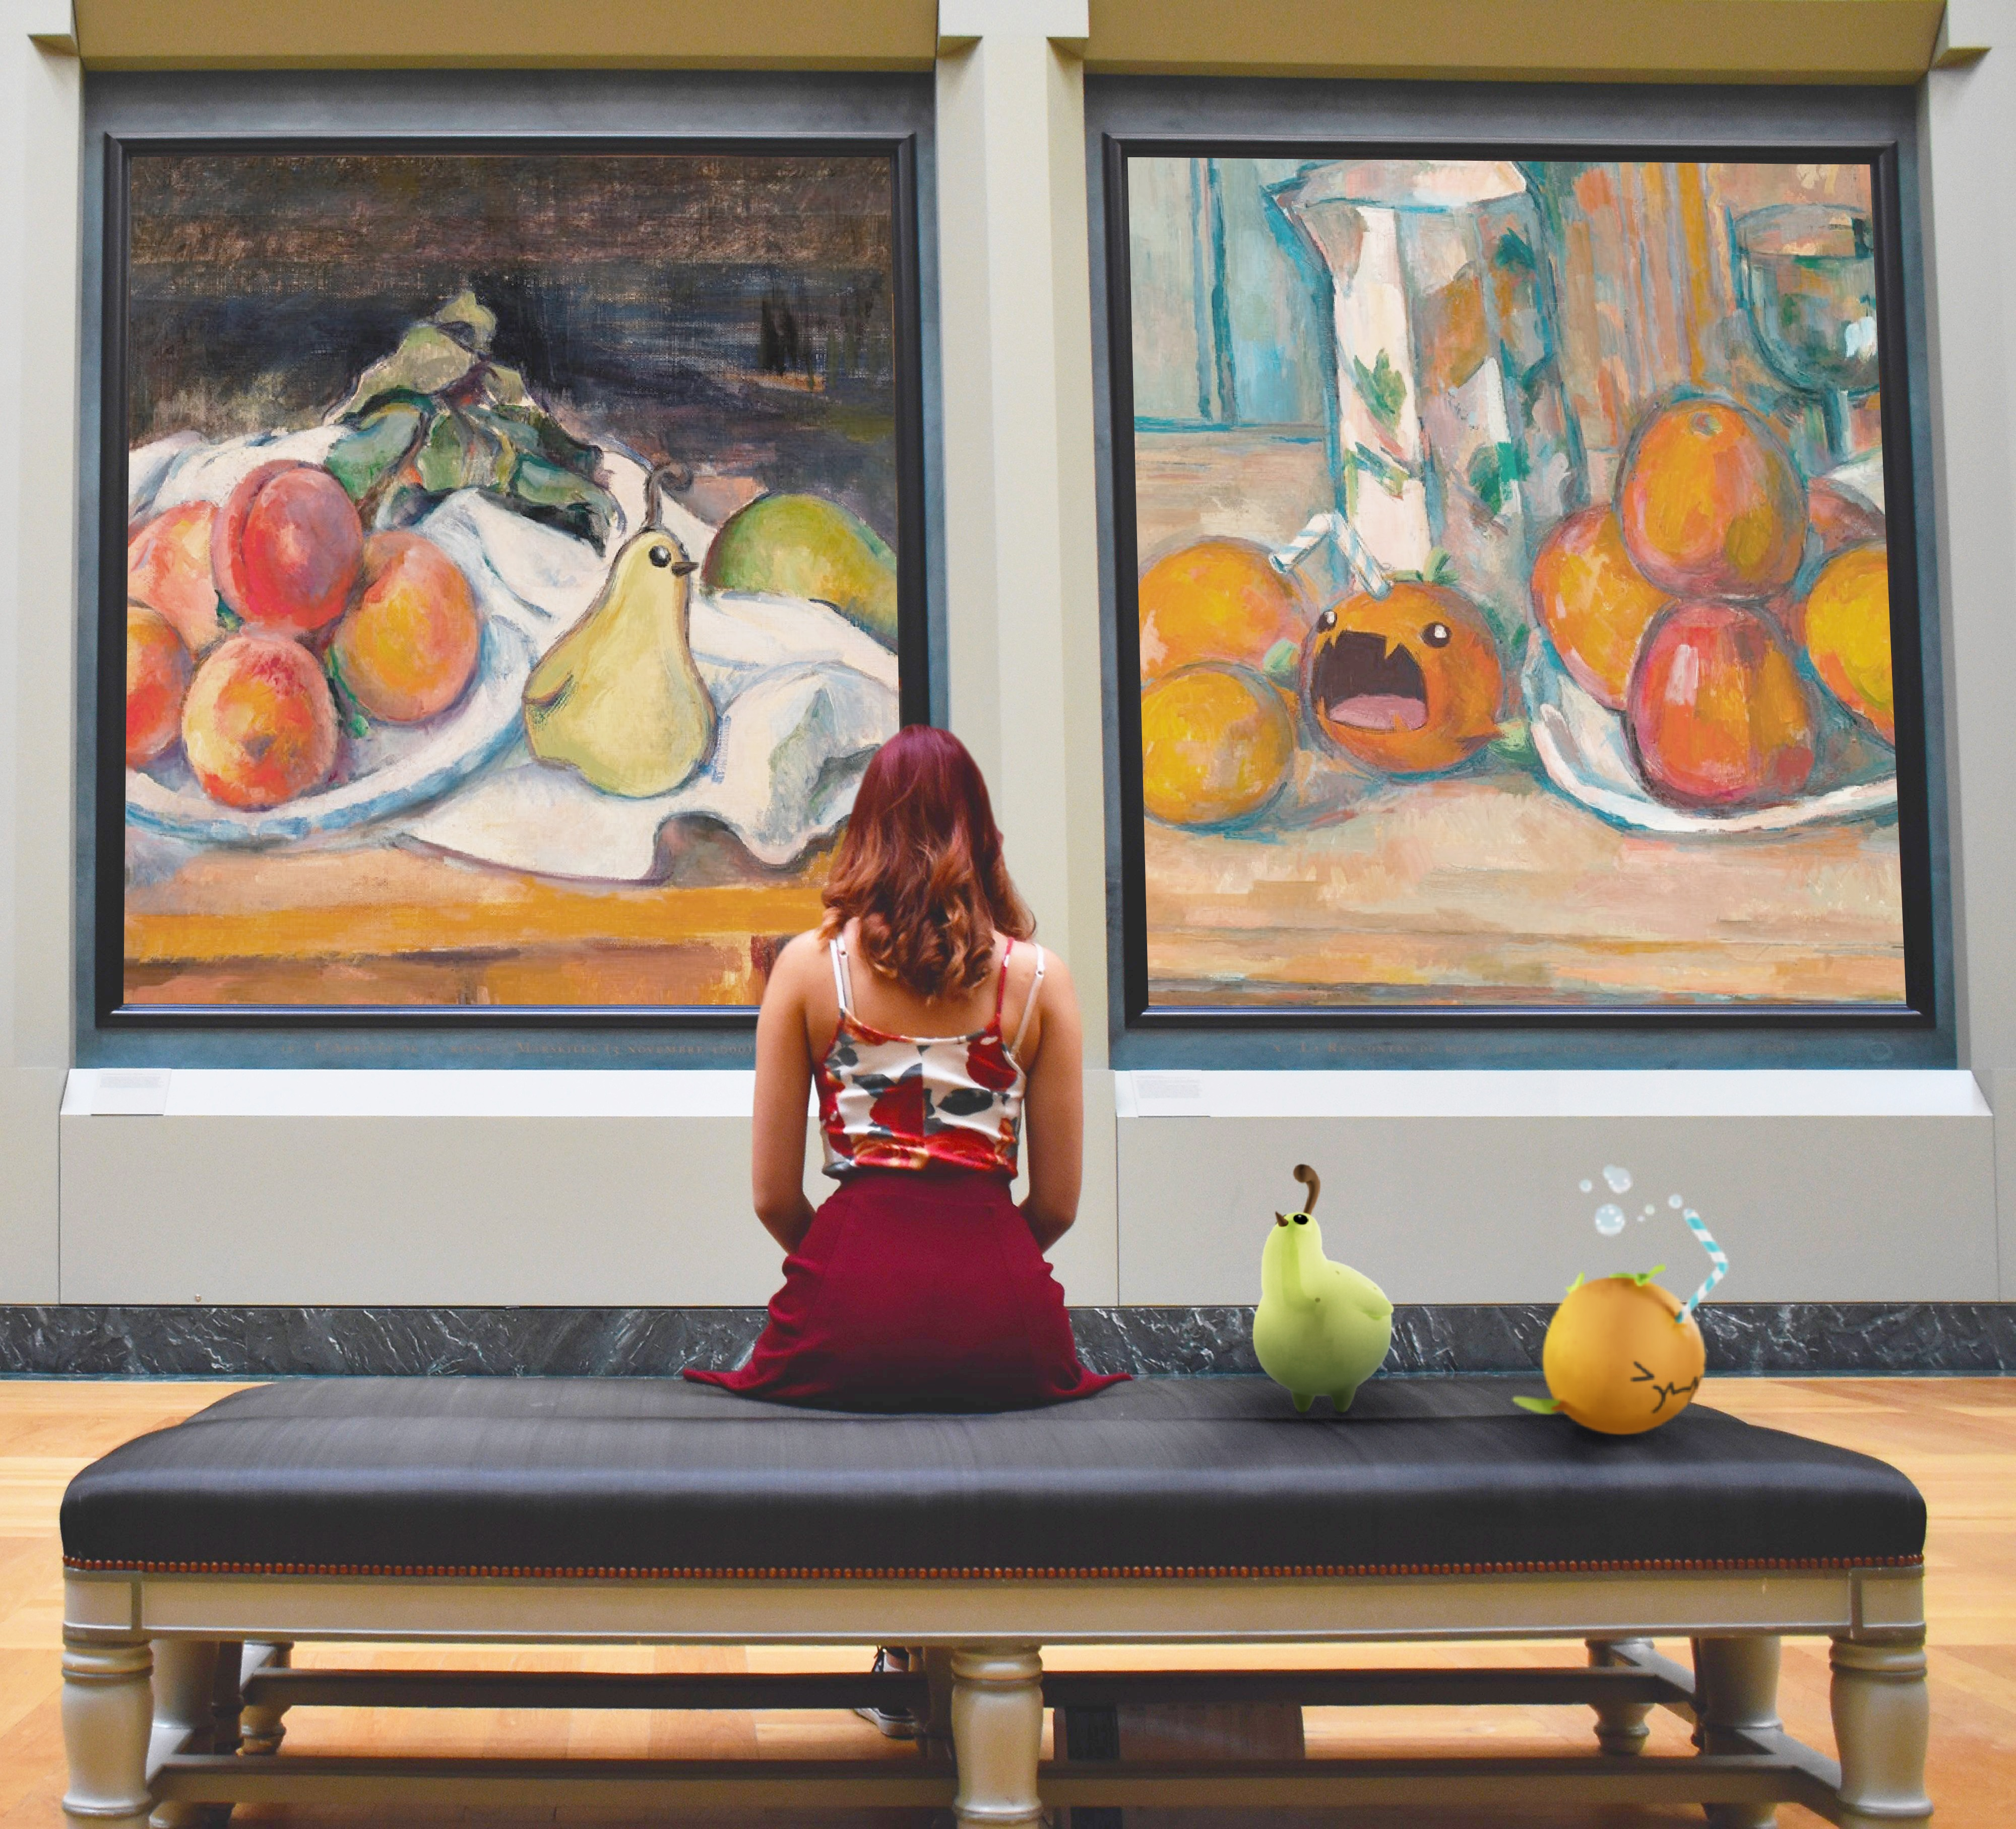 A woman sits on a bench in an art gallery admiring two paintings of Nibblins from the mobile game Nibblity. On the bench beside her are the same Nibblins that are depicted in the artwork.